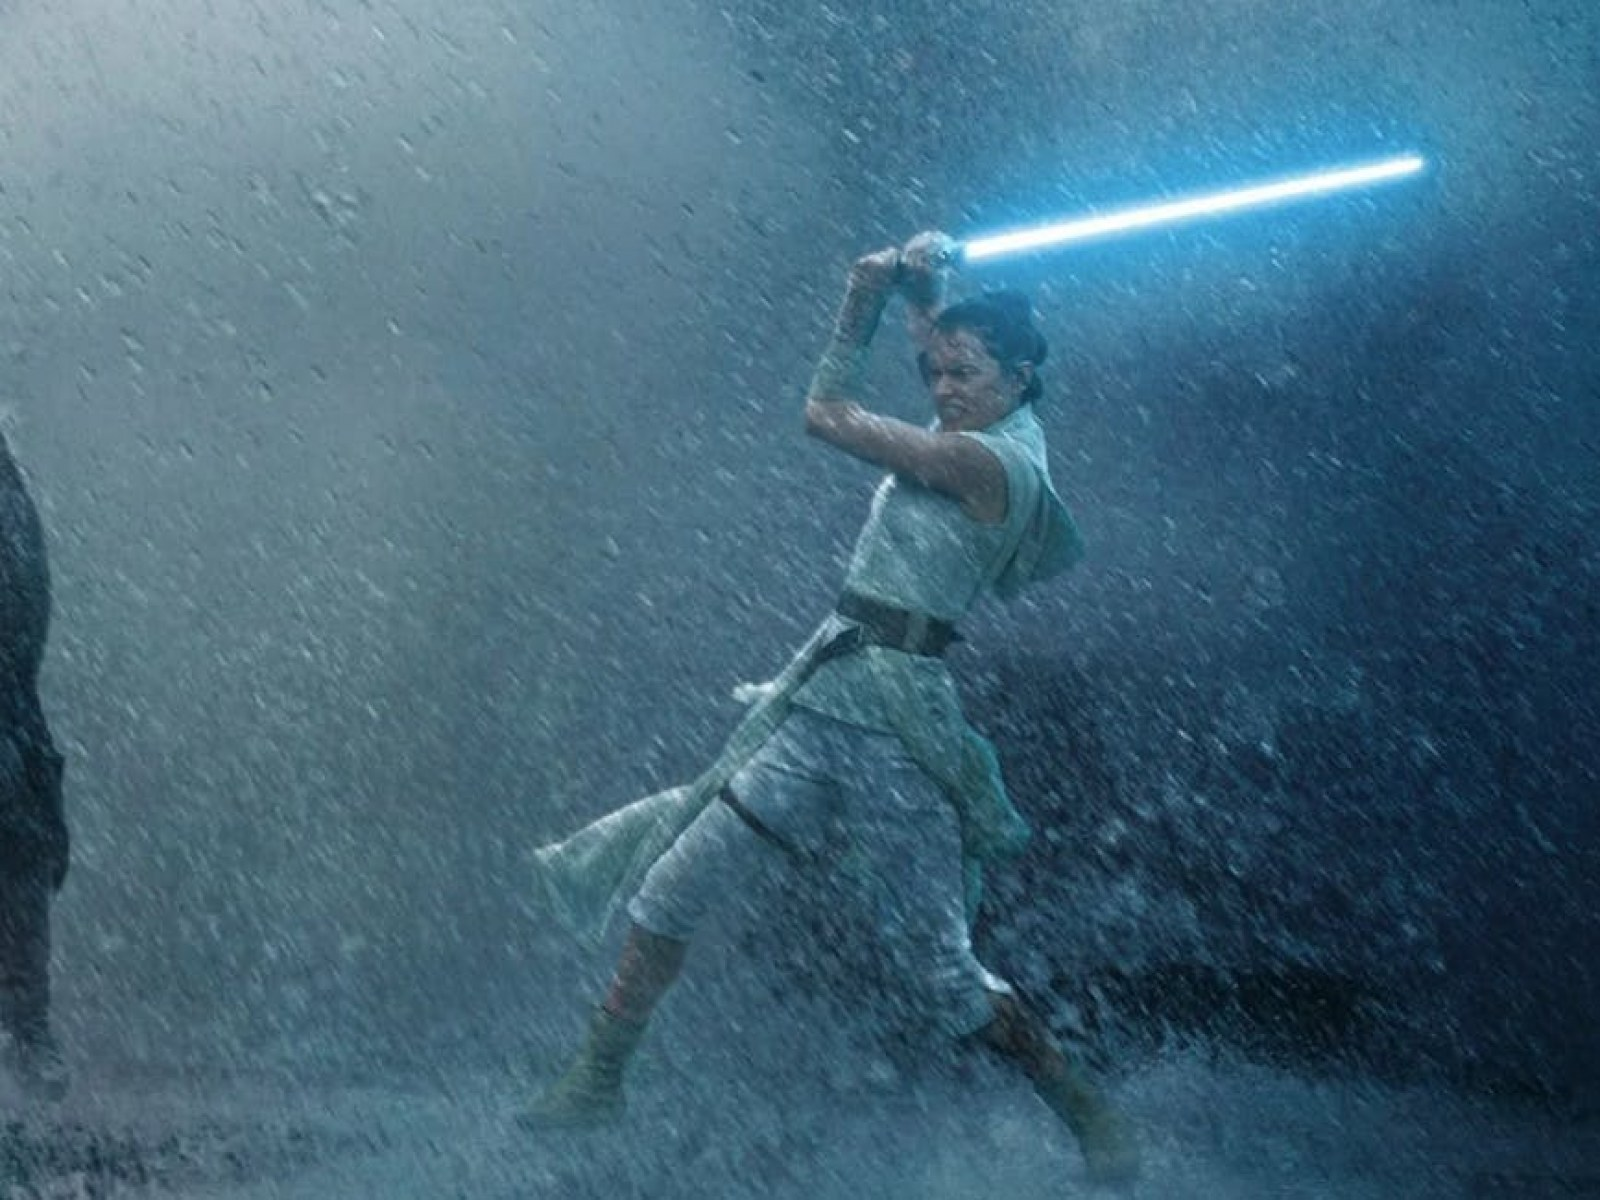 Star Wars The Rise Of Skywalker Reviews Embargo When Are The First Reviews Out